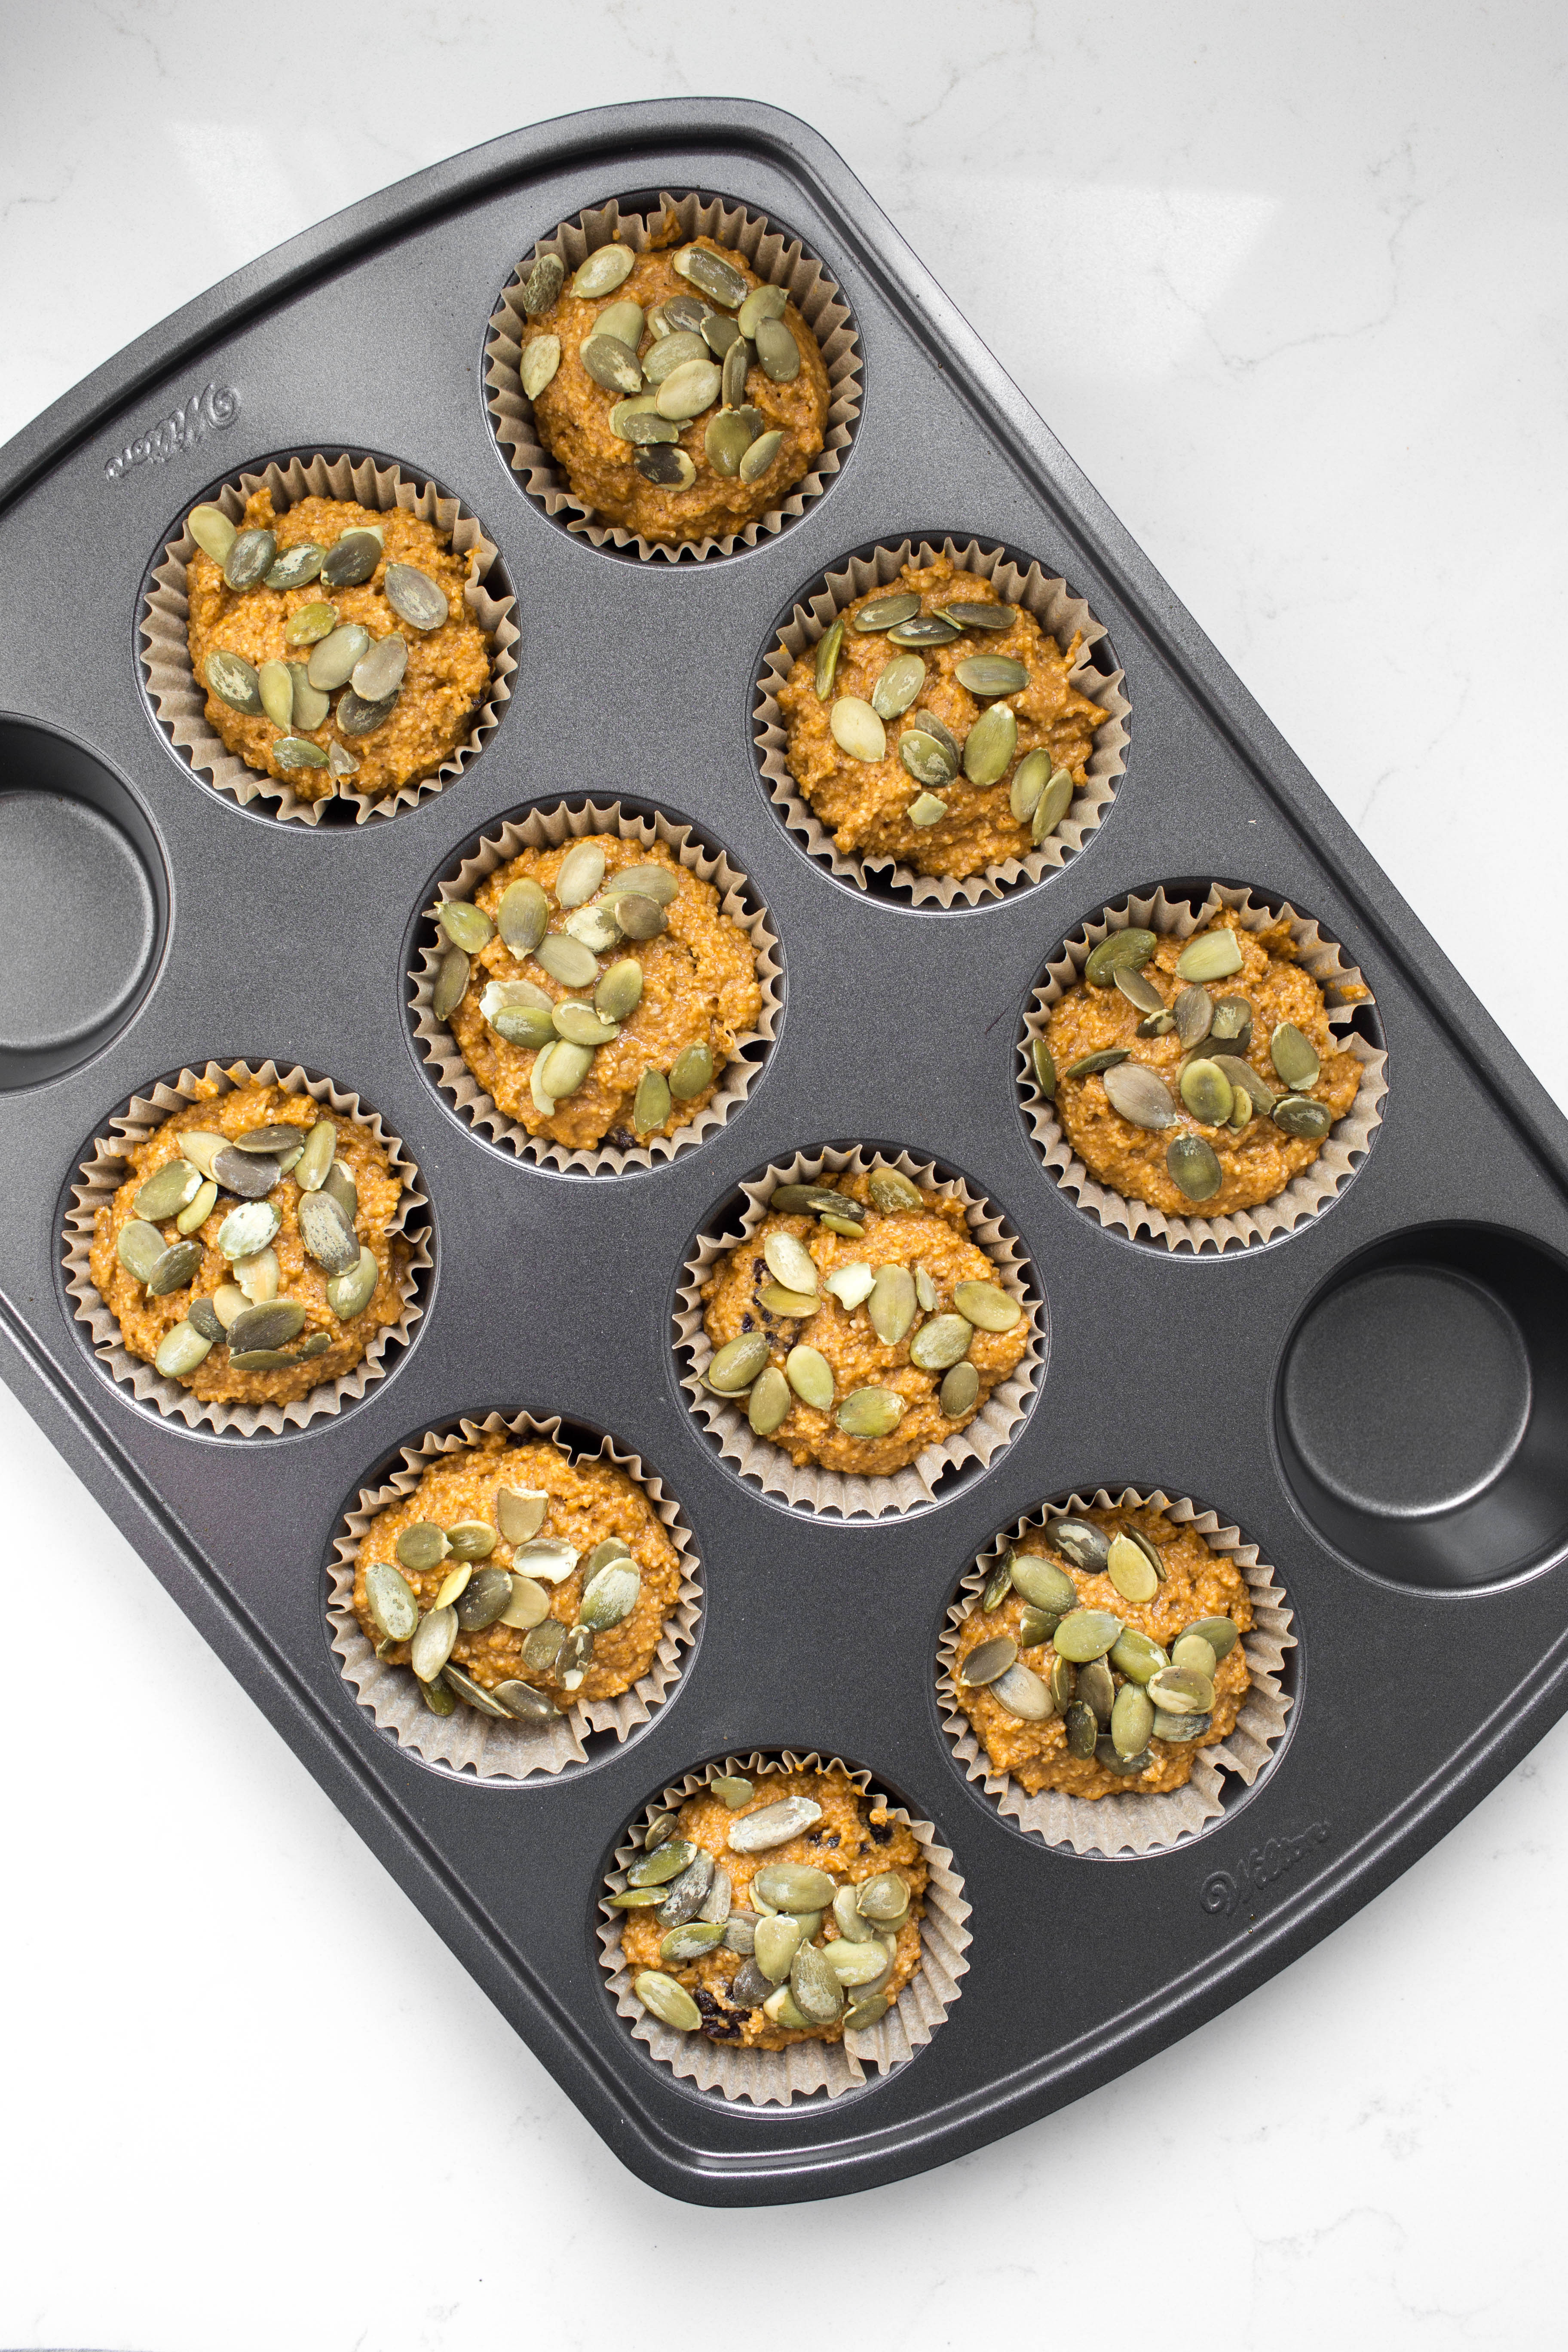 Muffin pan with pre-baked vegan pumpkin batter